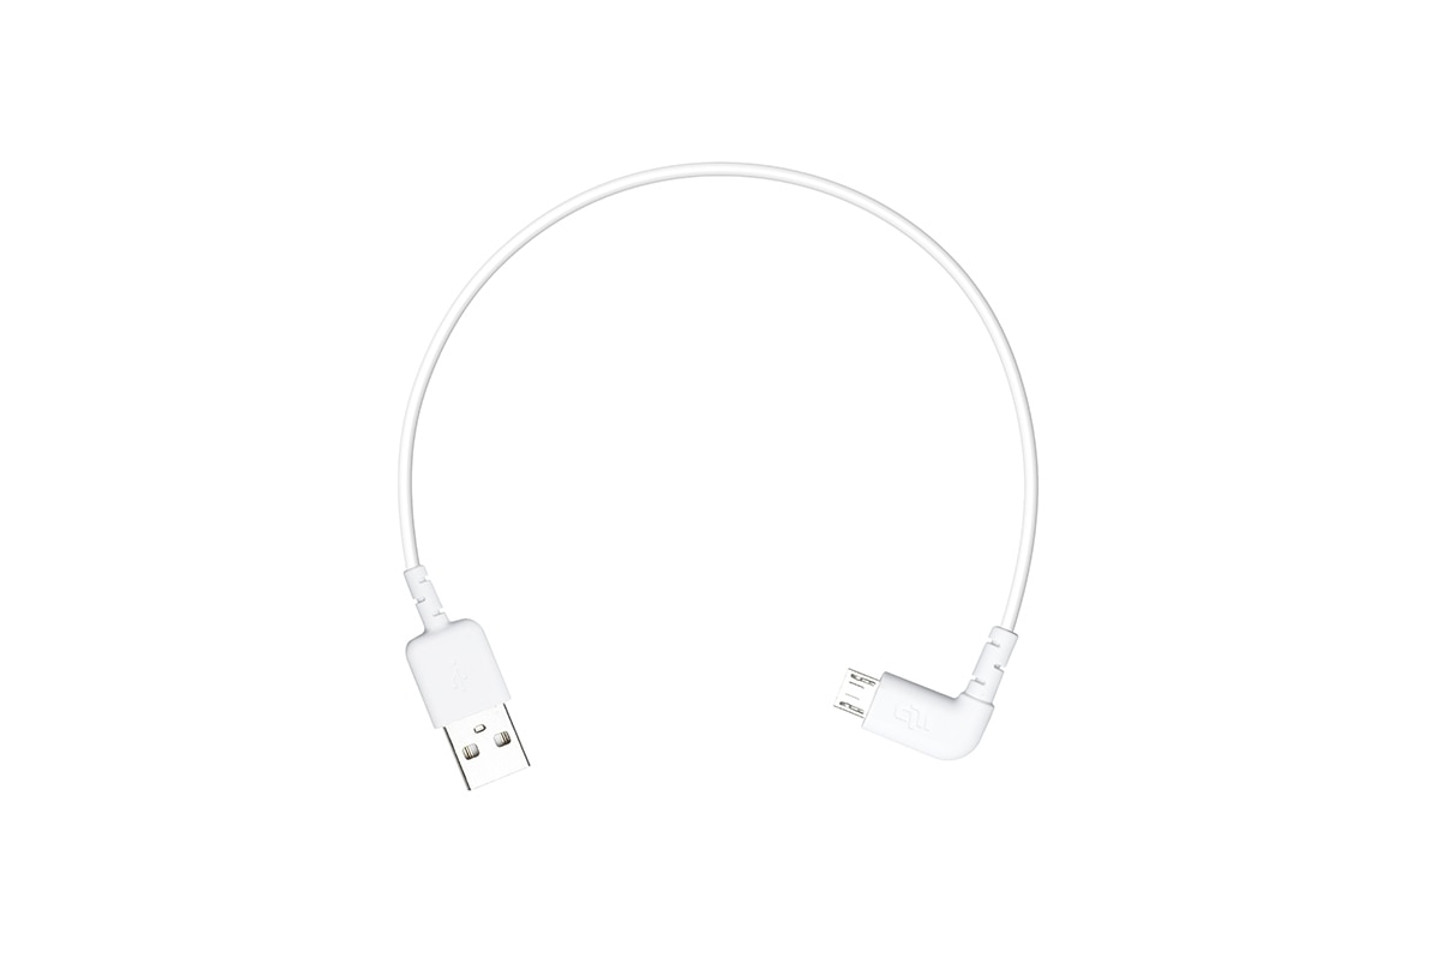 RC Cable (MicroUSB to USB)